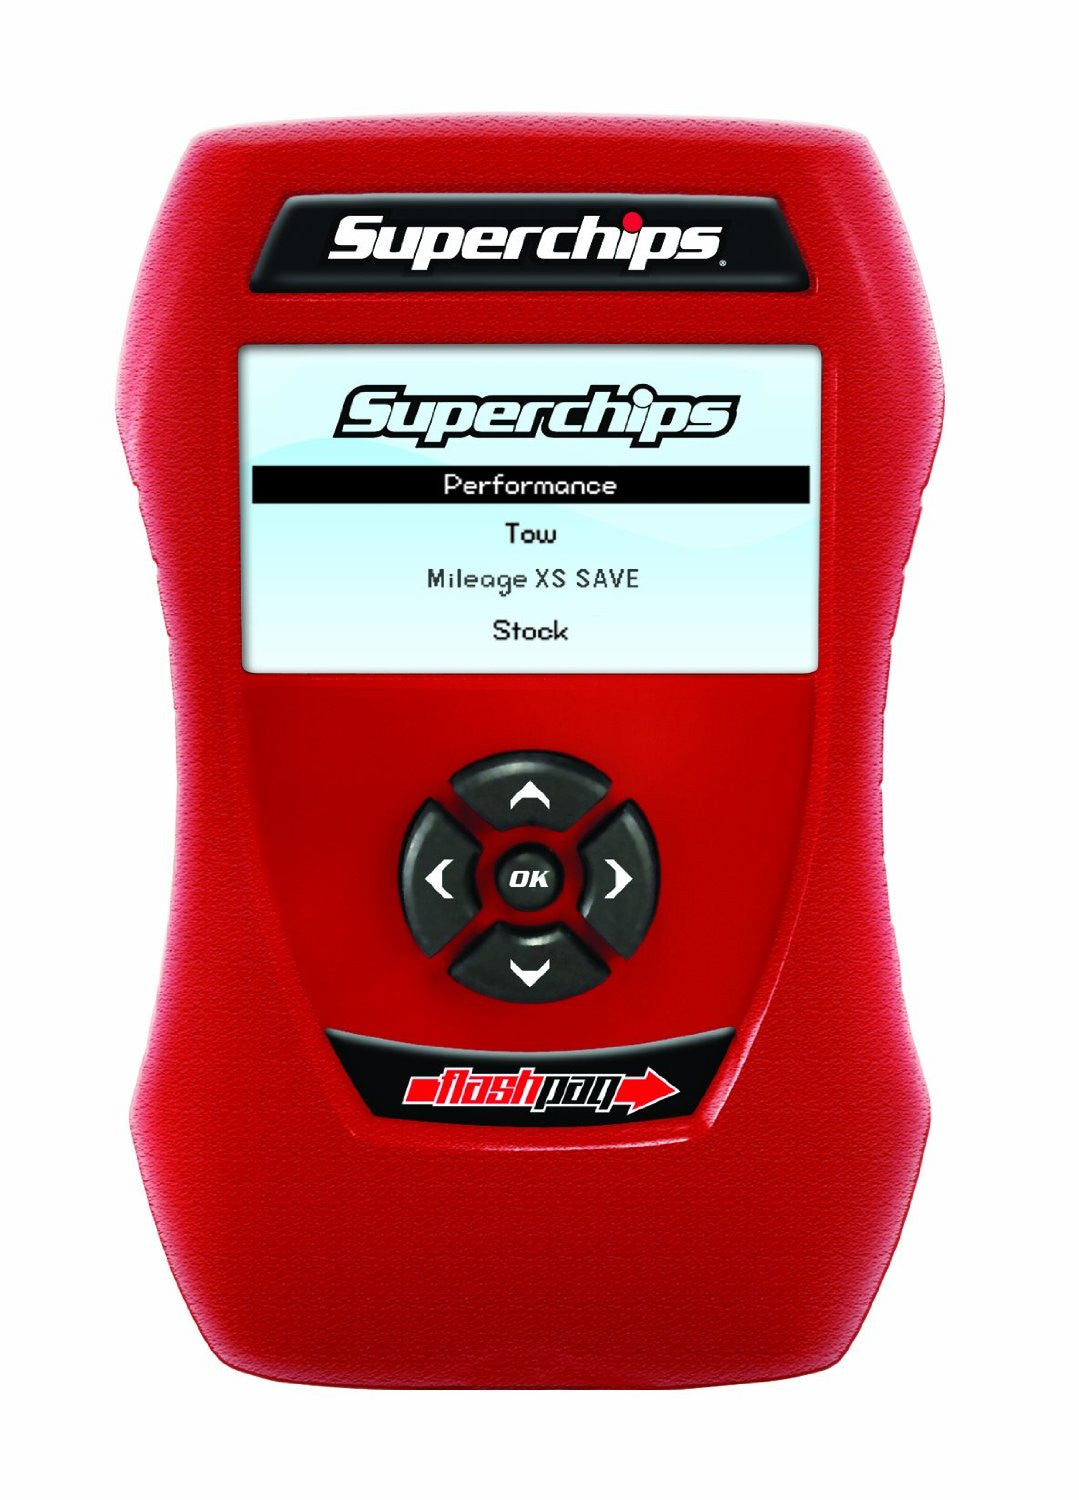 Superchips Flashpaq 2004-2010 Nissan/Infinity Trucks & SUV's 4865